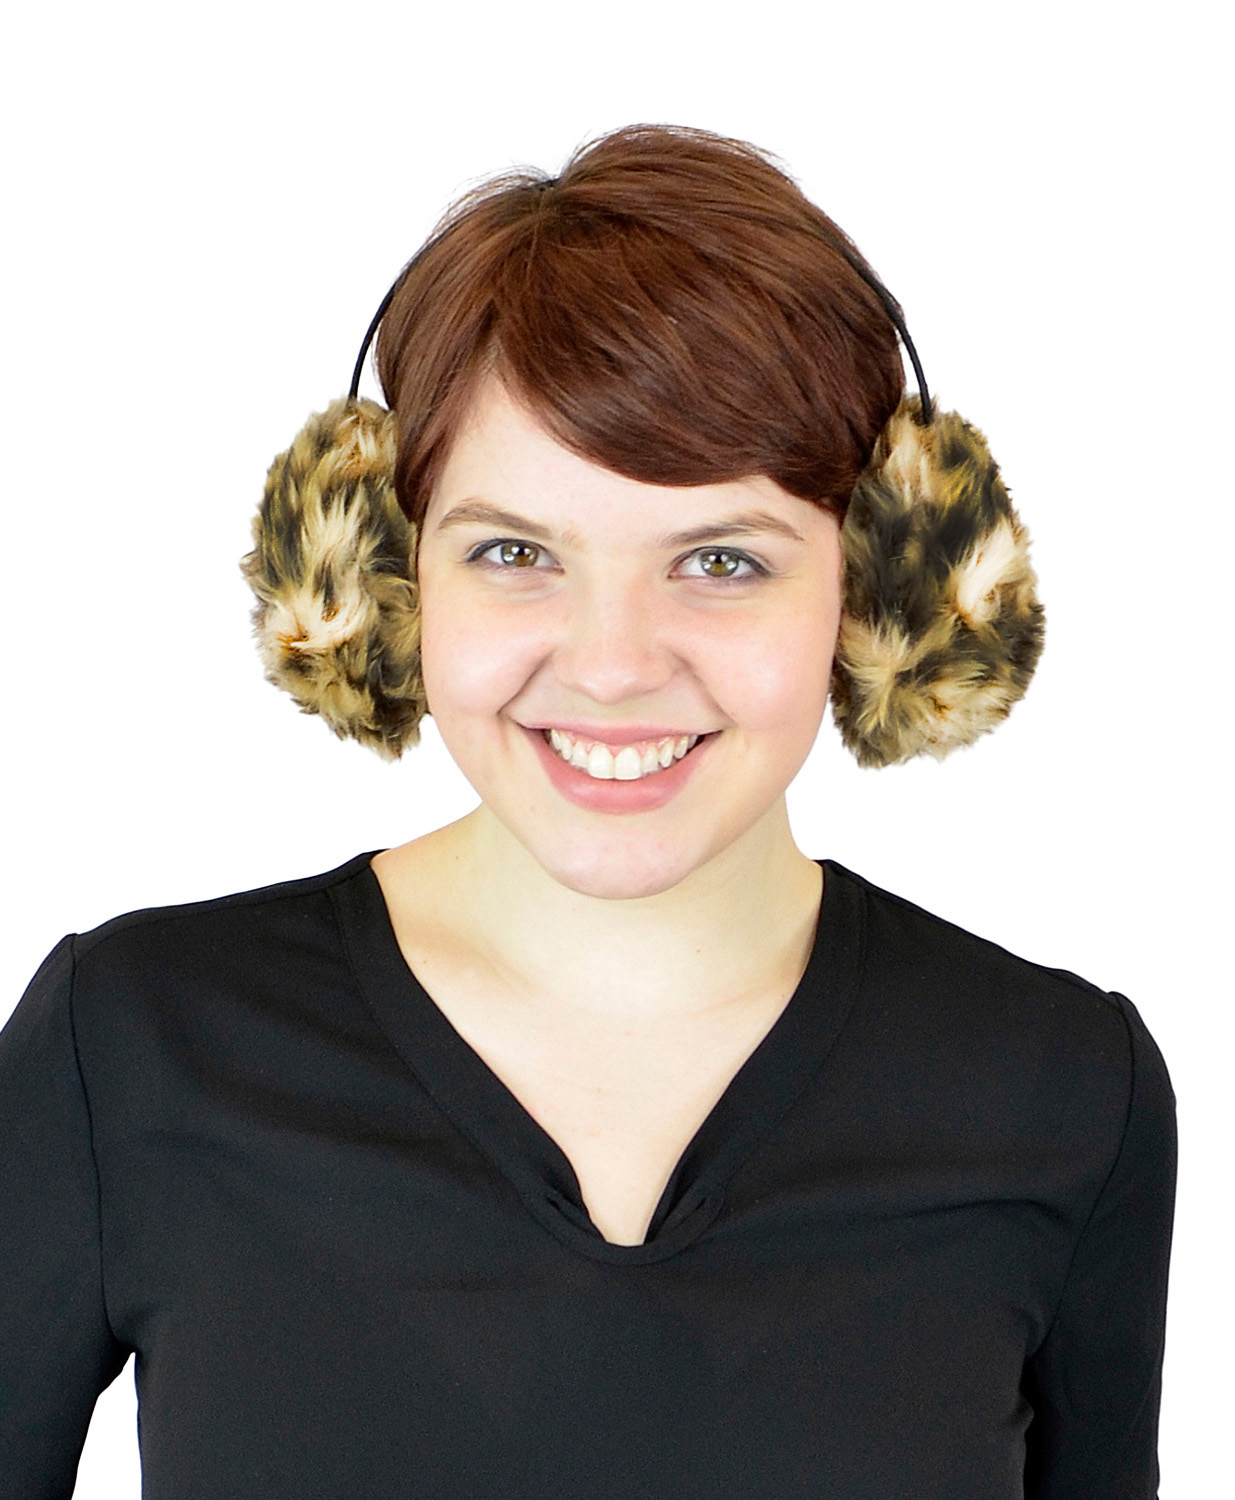 Women's Winter Ear Warmers - Faux Furry Warm Outdoors Ear Muffs - Fashion Earbands and Earmuffs by Belle Donne - Camel